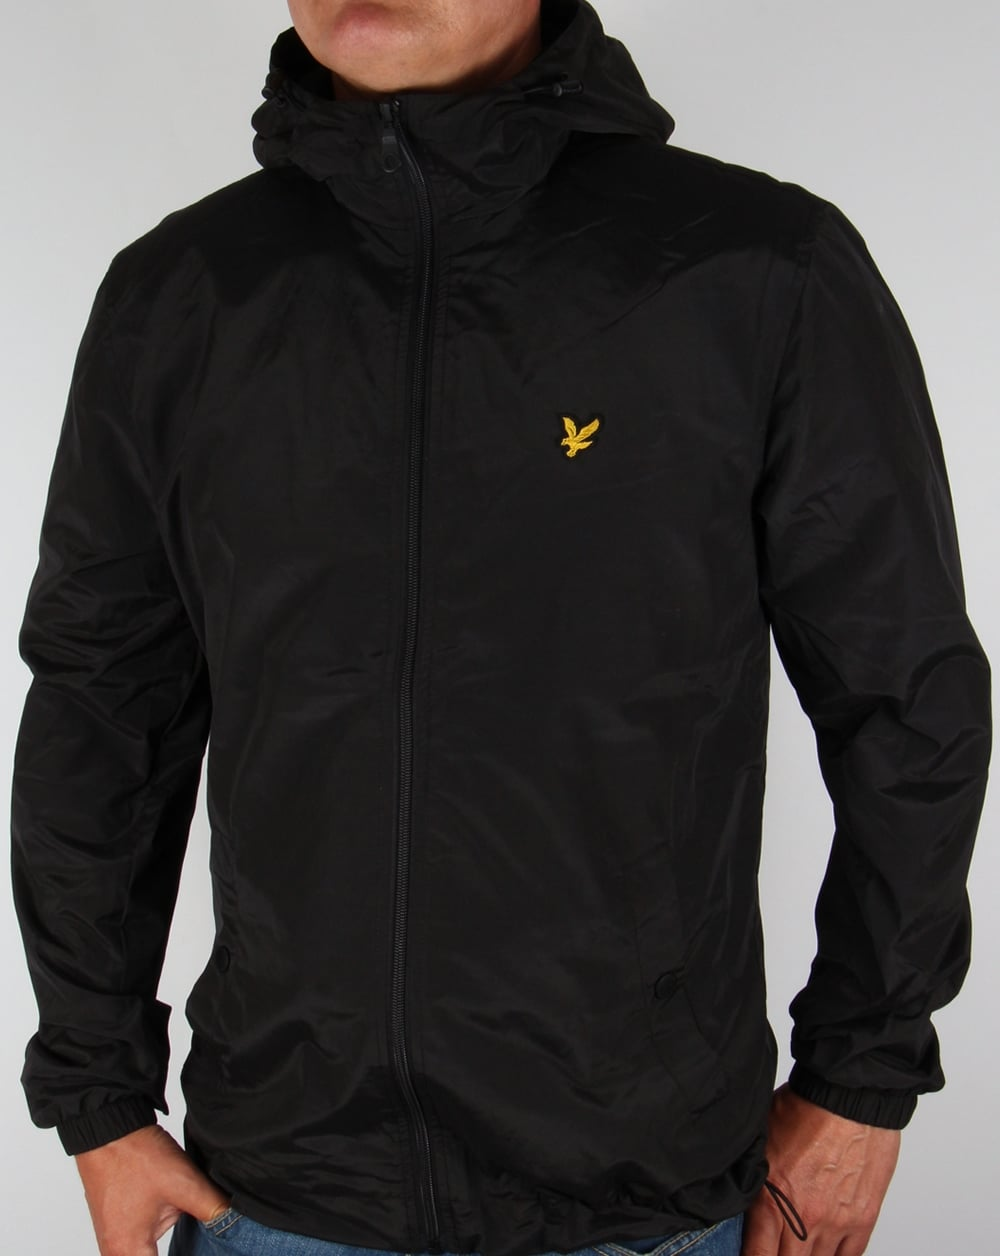 lyle and scott zip through hooded jacket black coat hoody mens. Black Bedroom Furniture Sets. Home Design Ideas